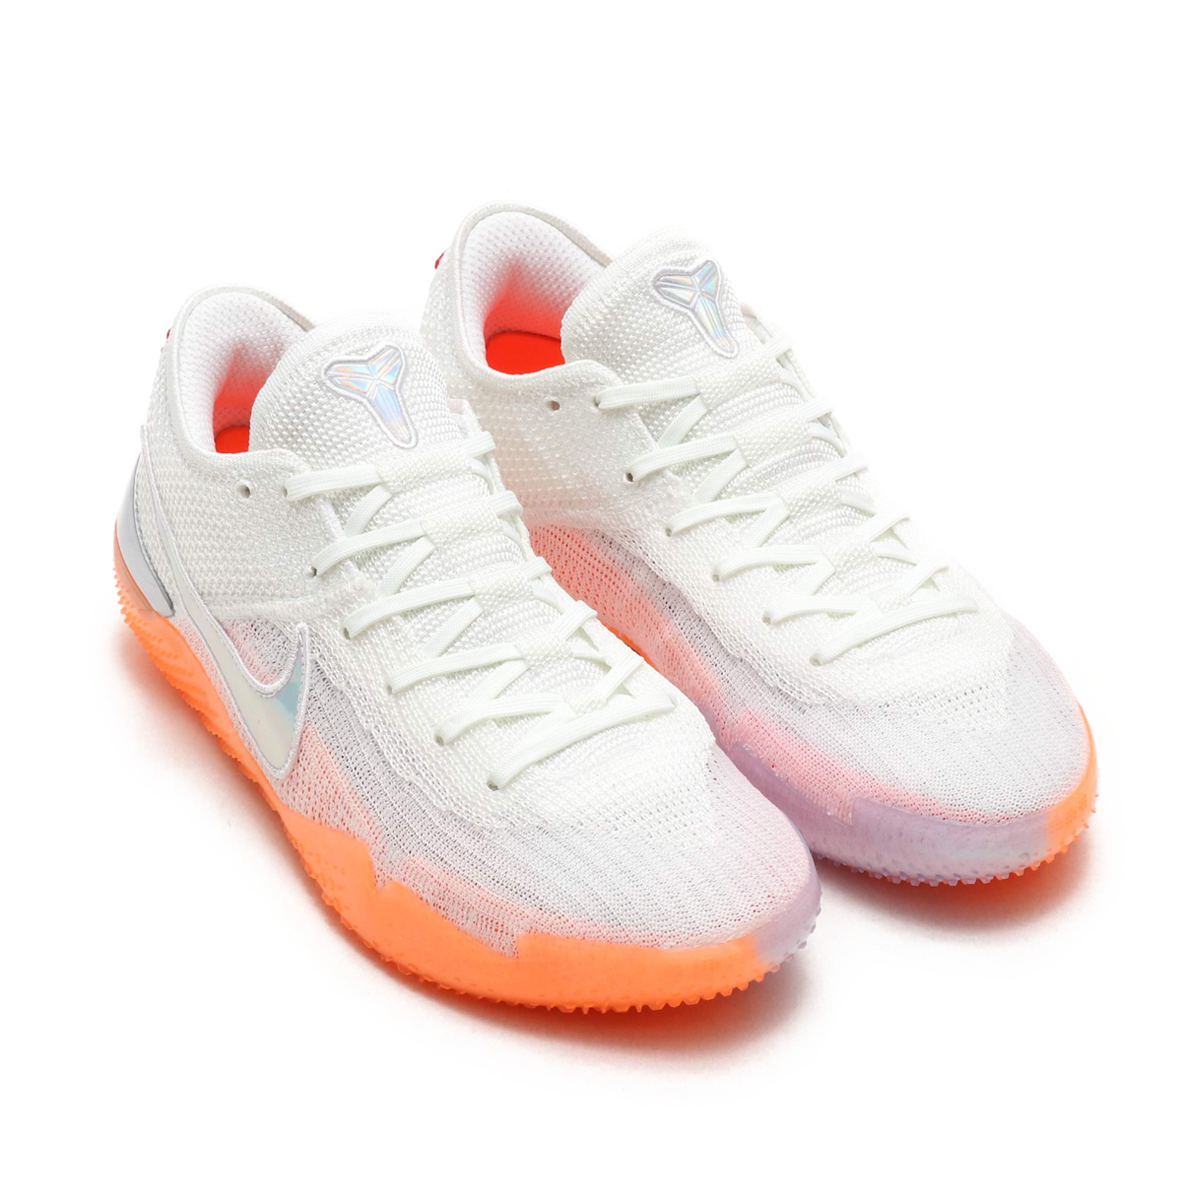 be3fd715e054 NIKE KOBE AD NXT 360 (Nike Corby AD NXT 360) (WHITE MULTI-COLOR-INFRARED  23-VOLT) 18SU-S